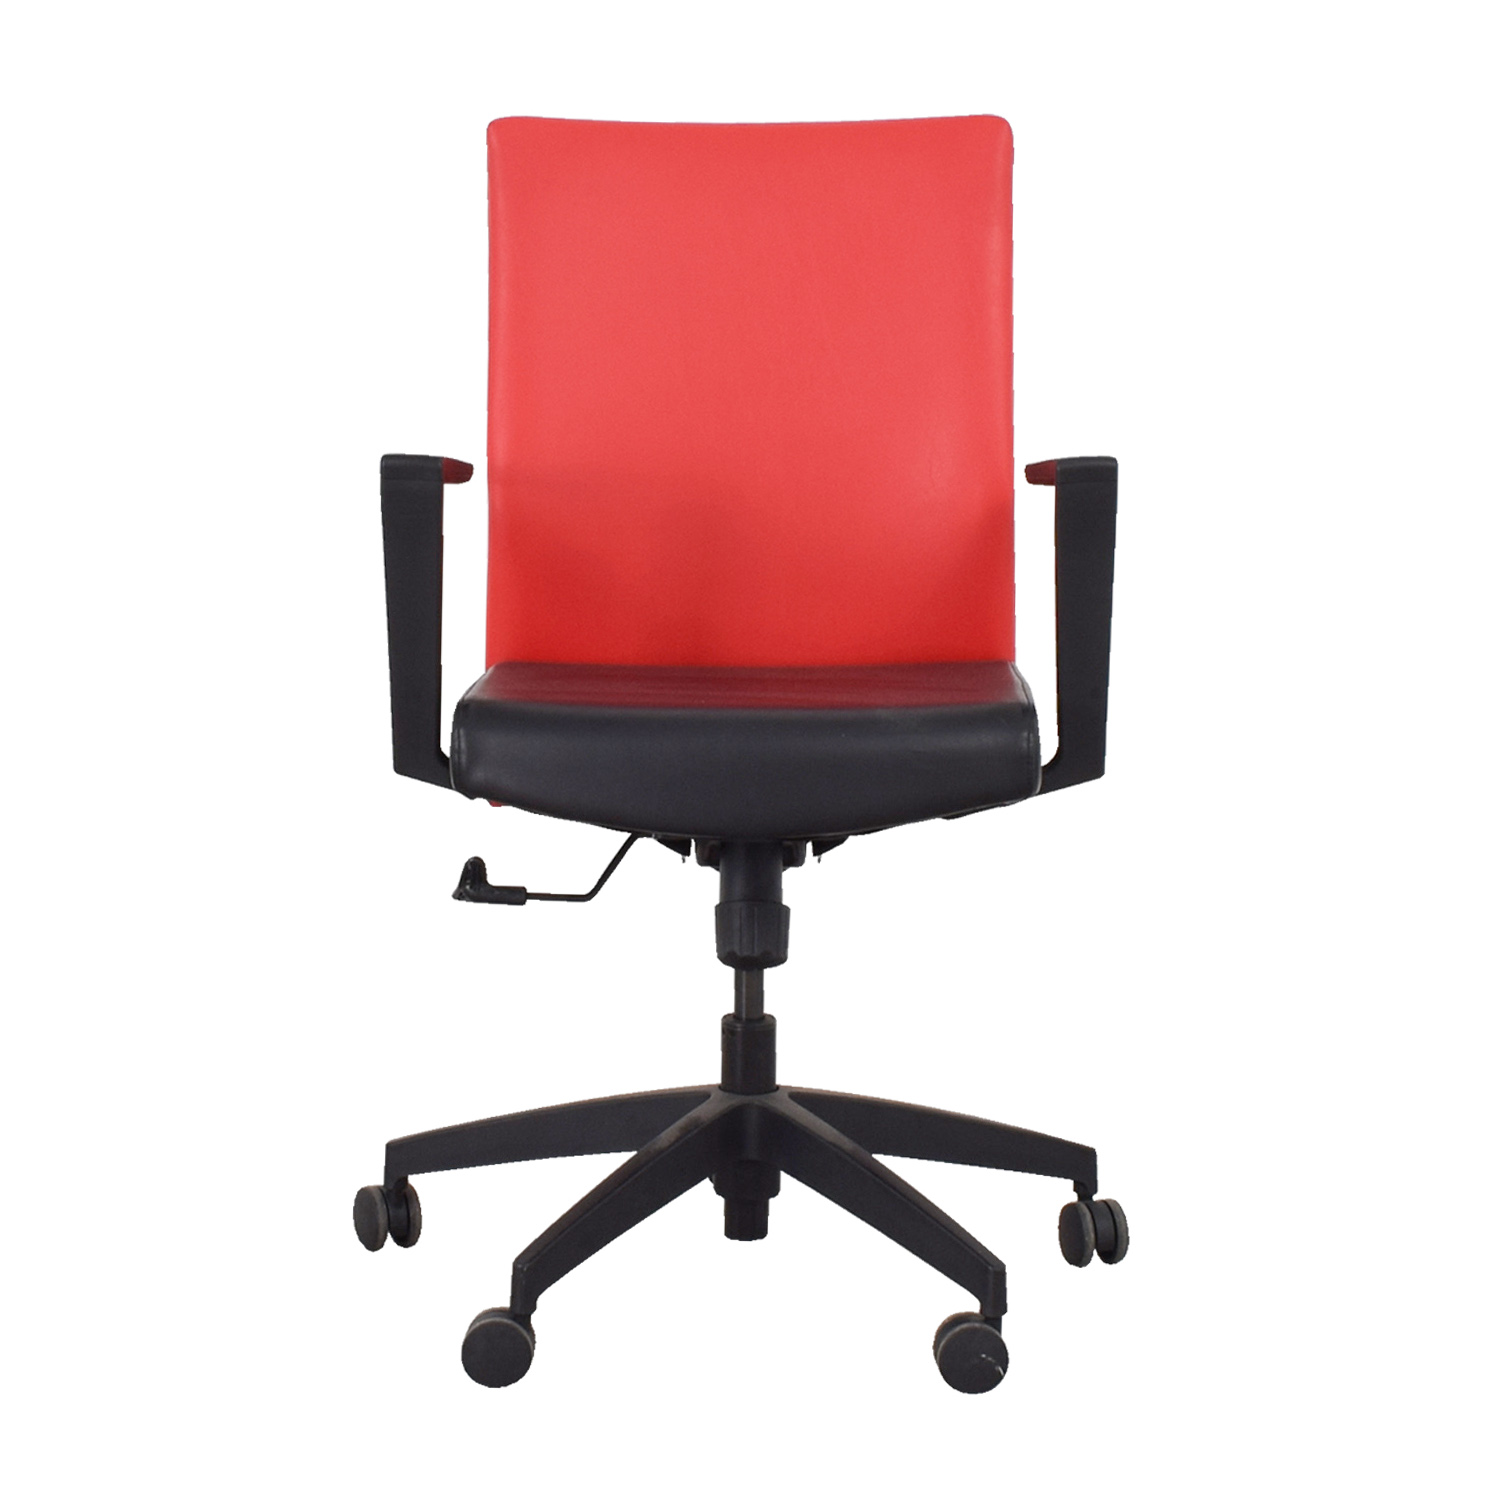 shop SitOnIt Red Office Chair SitOnIt Chairs